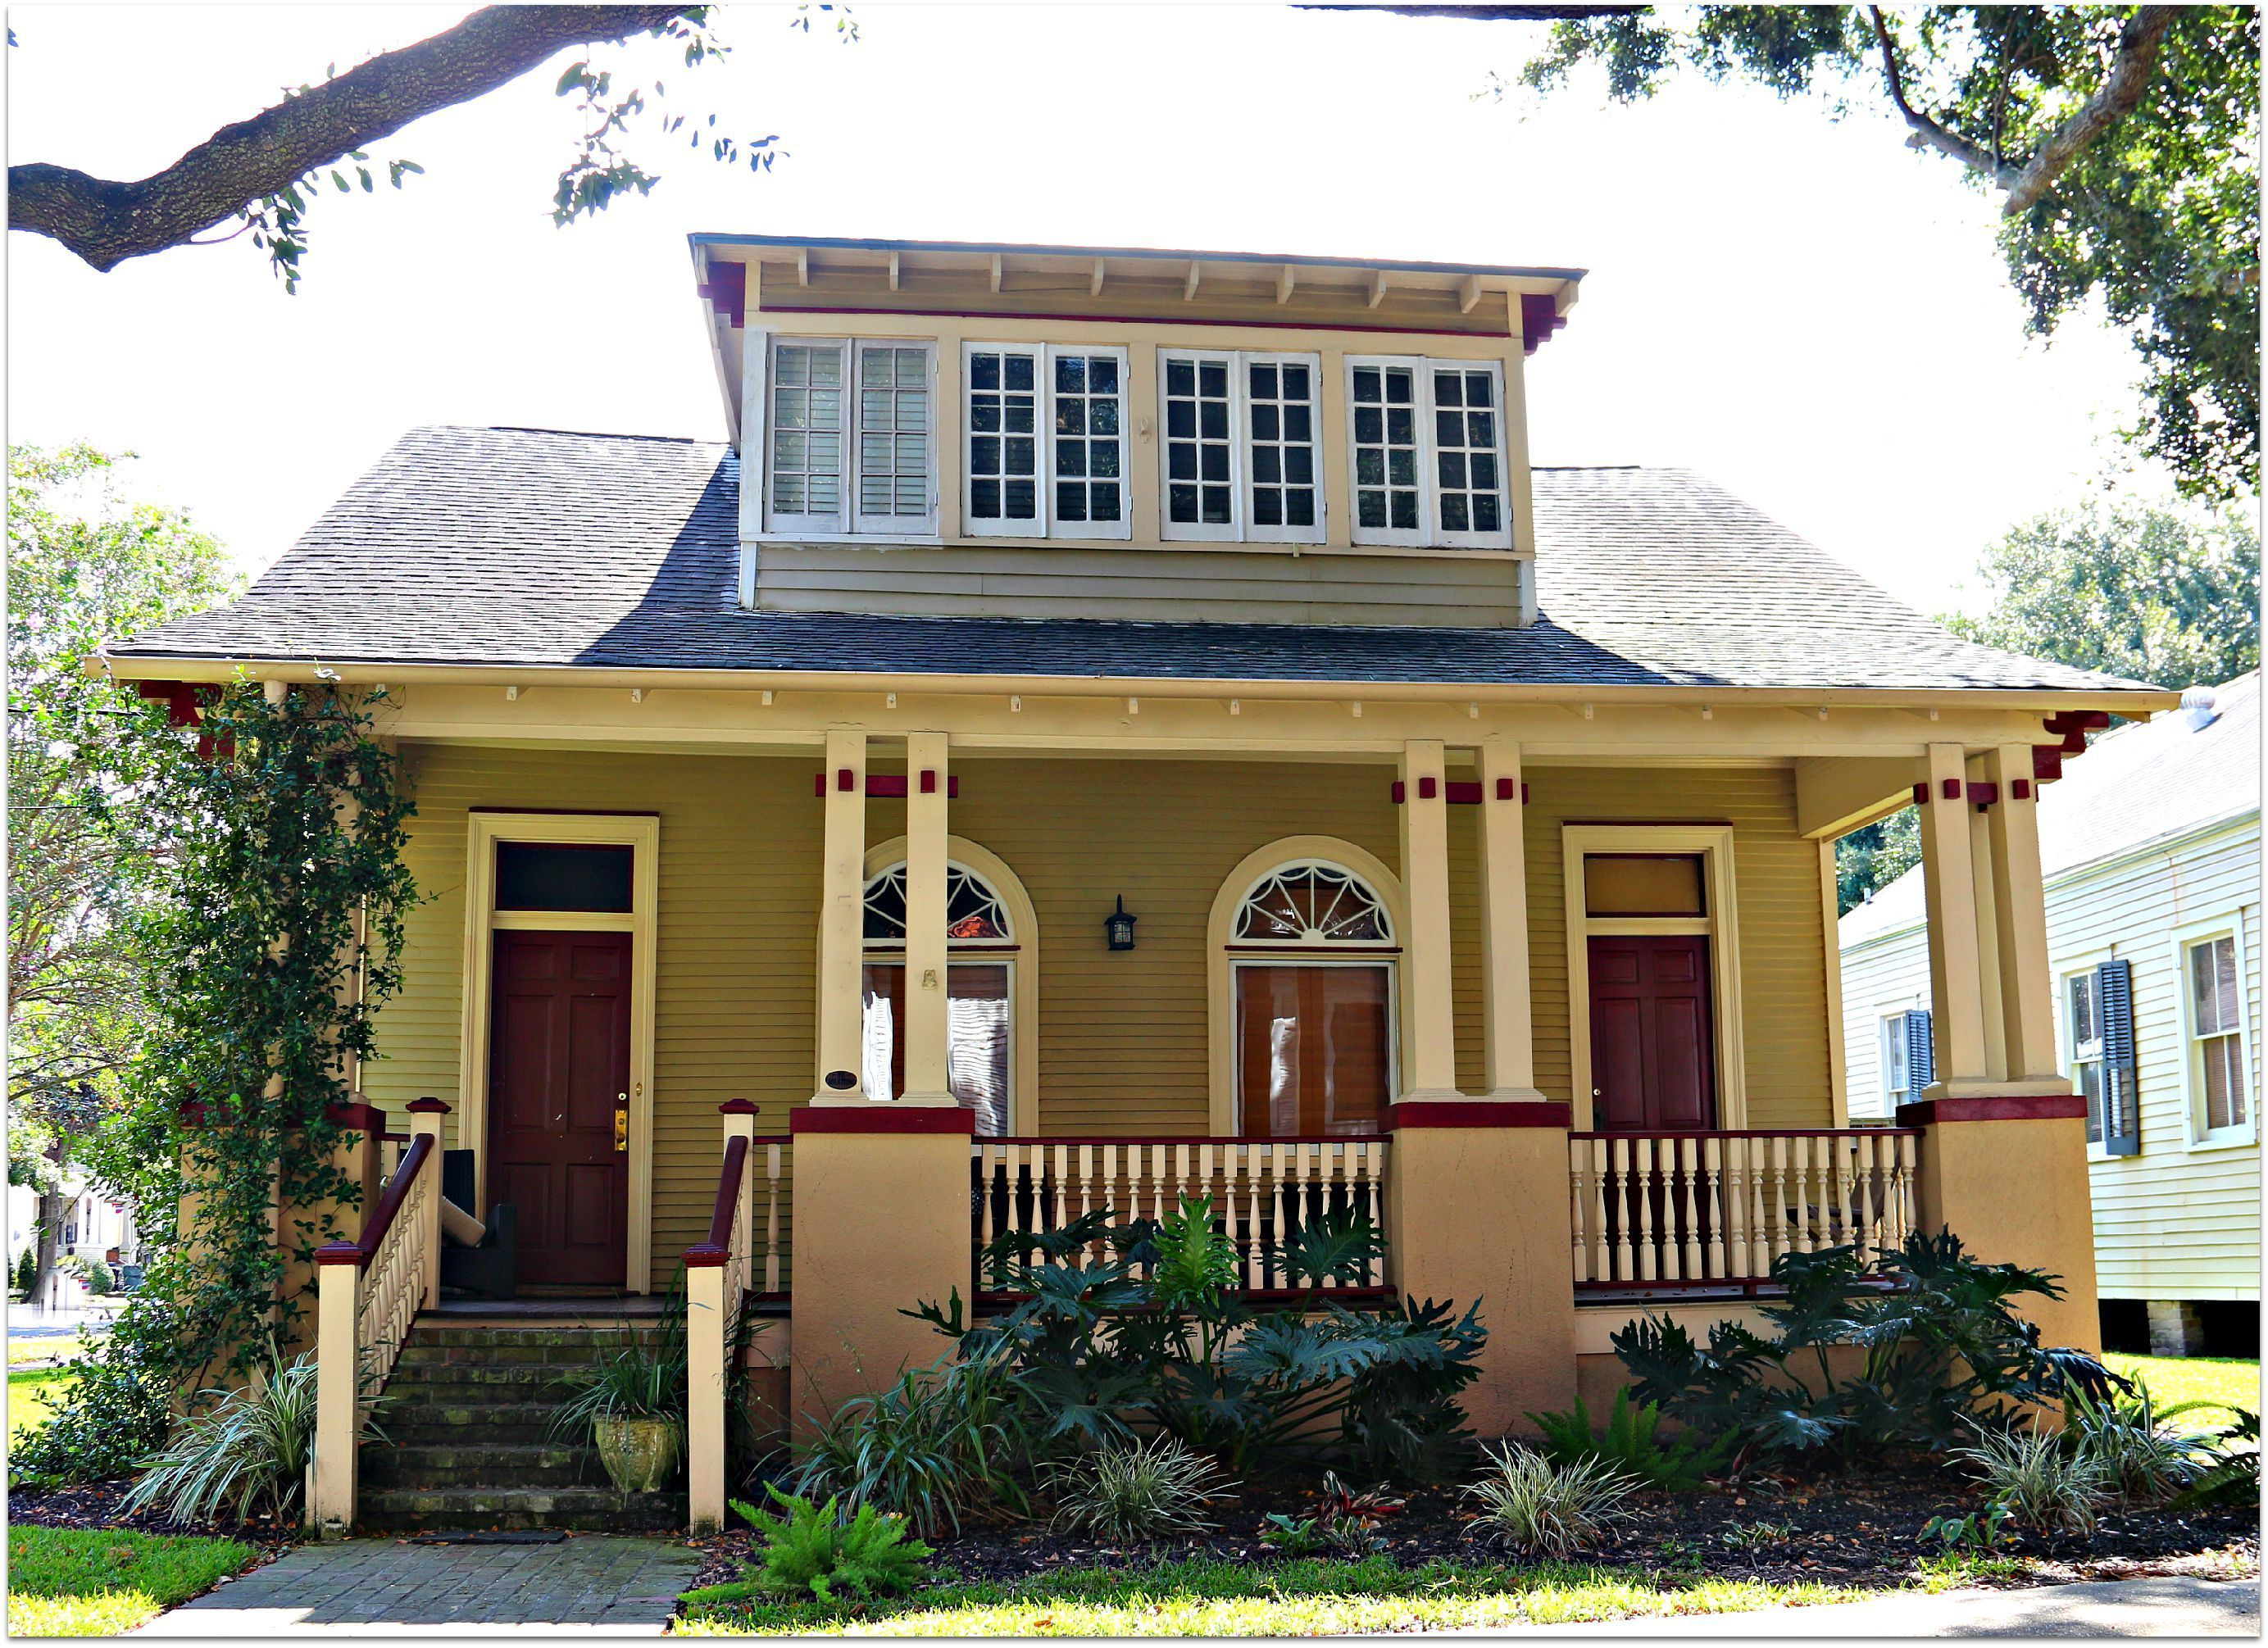 Photos of craftsman style homes - Custom Homes